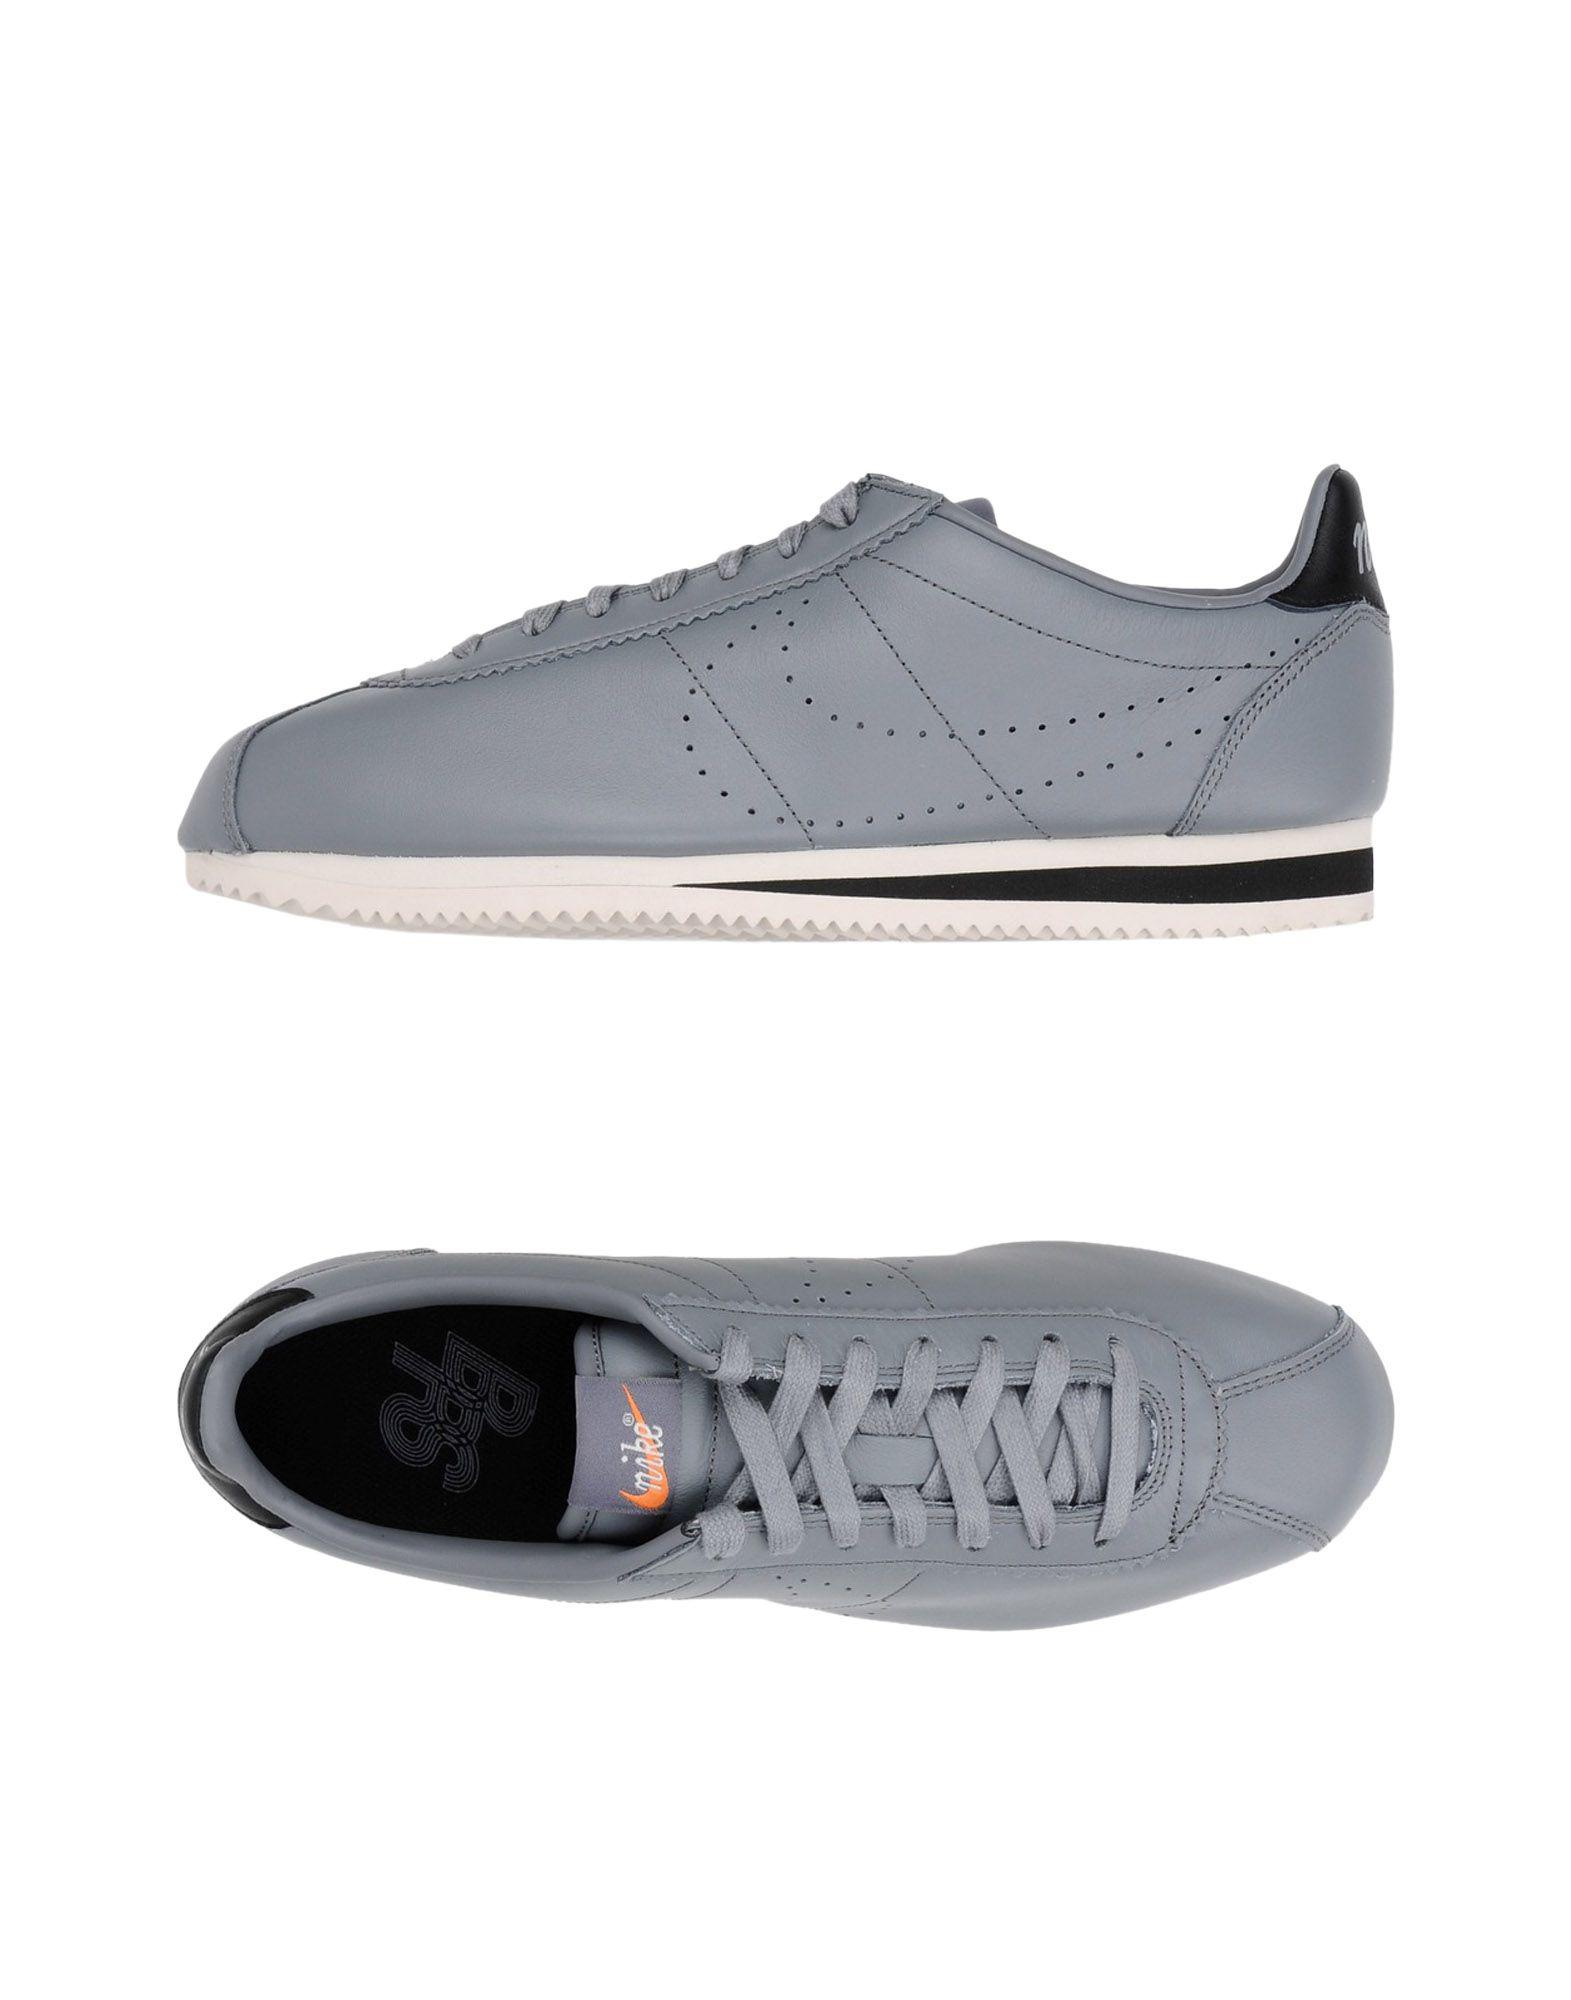 8fdc18e674dc Nike Low-tops   Sneakers in Gray for Men - Lyst